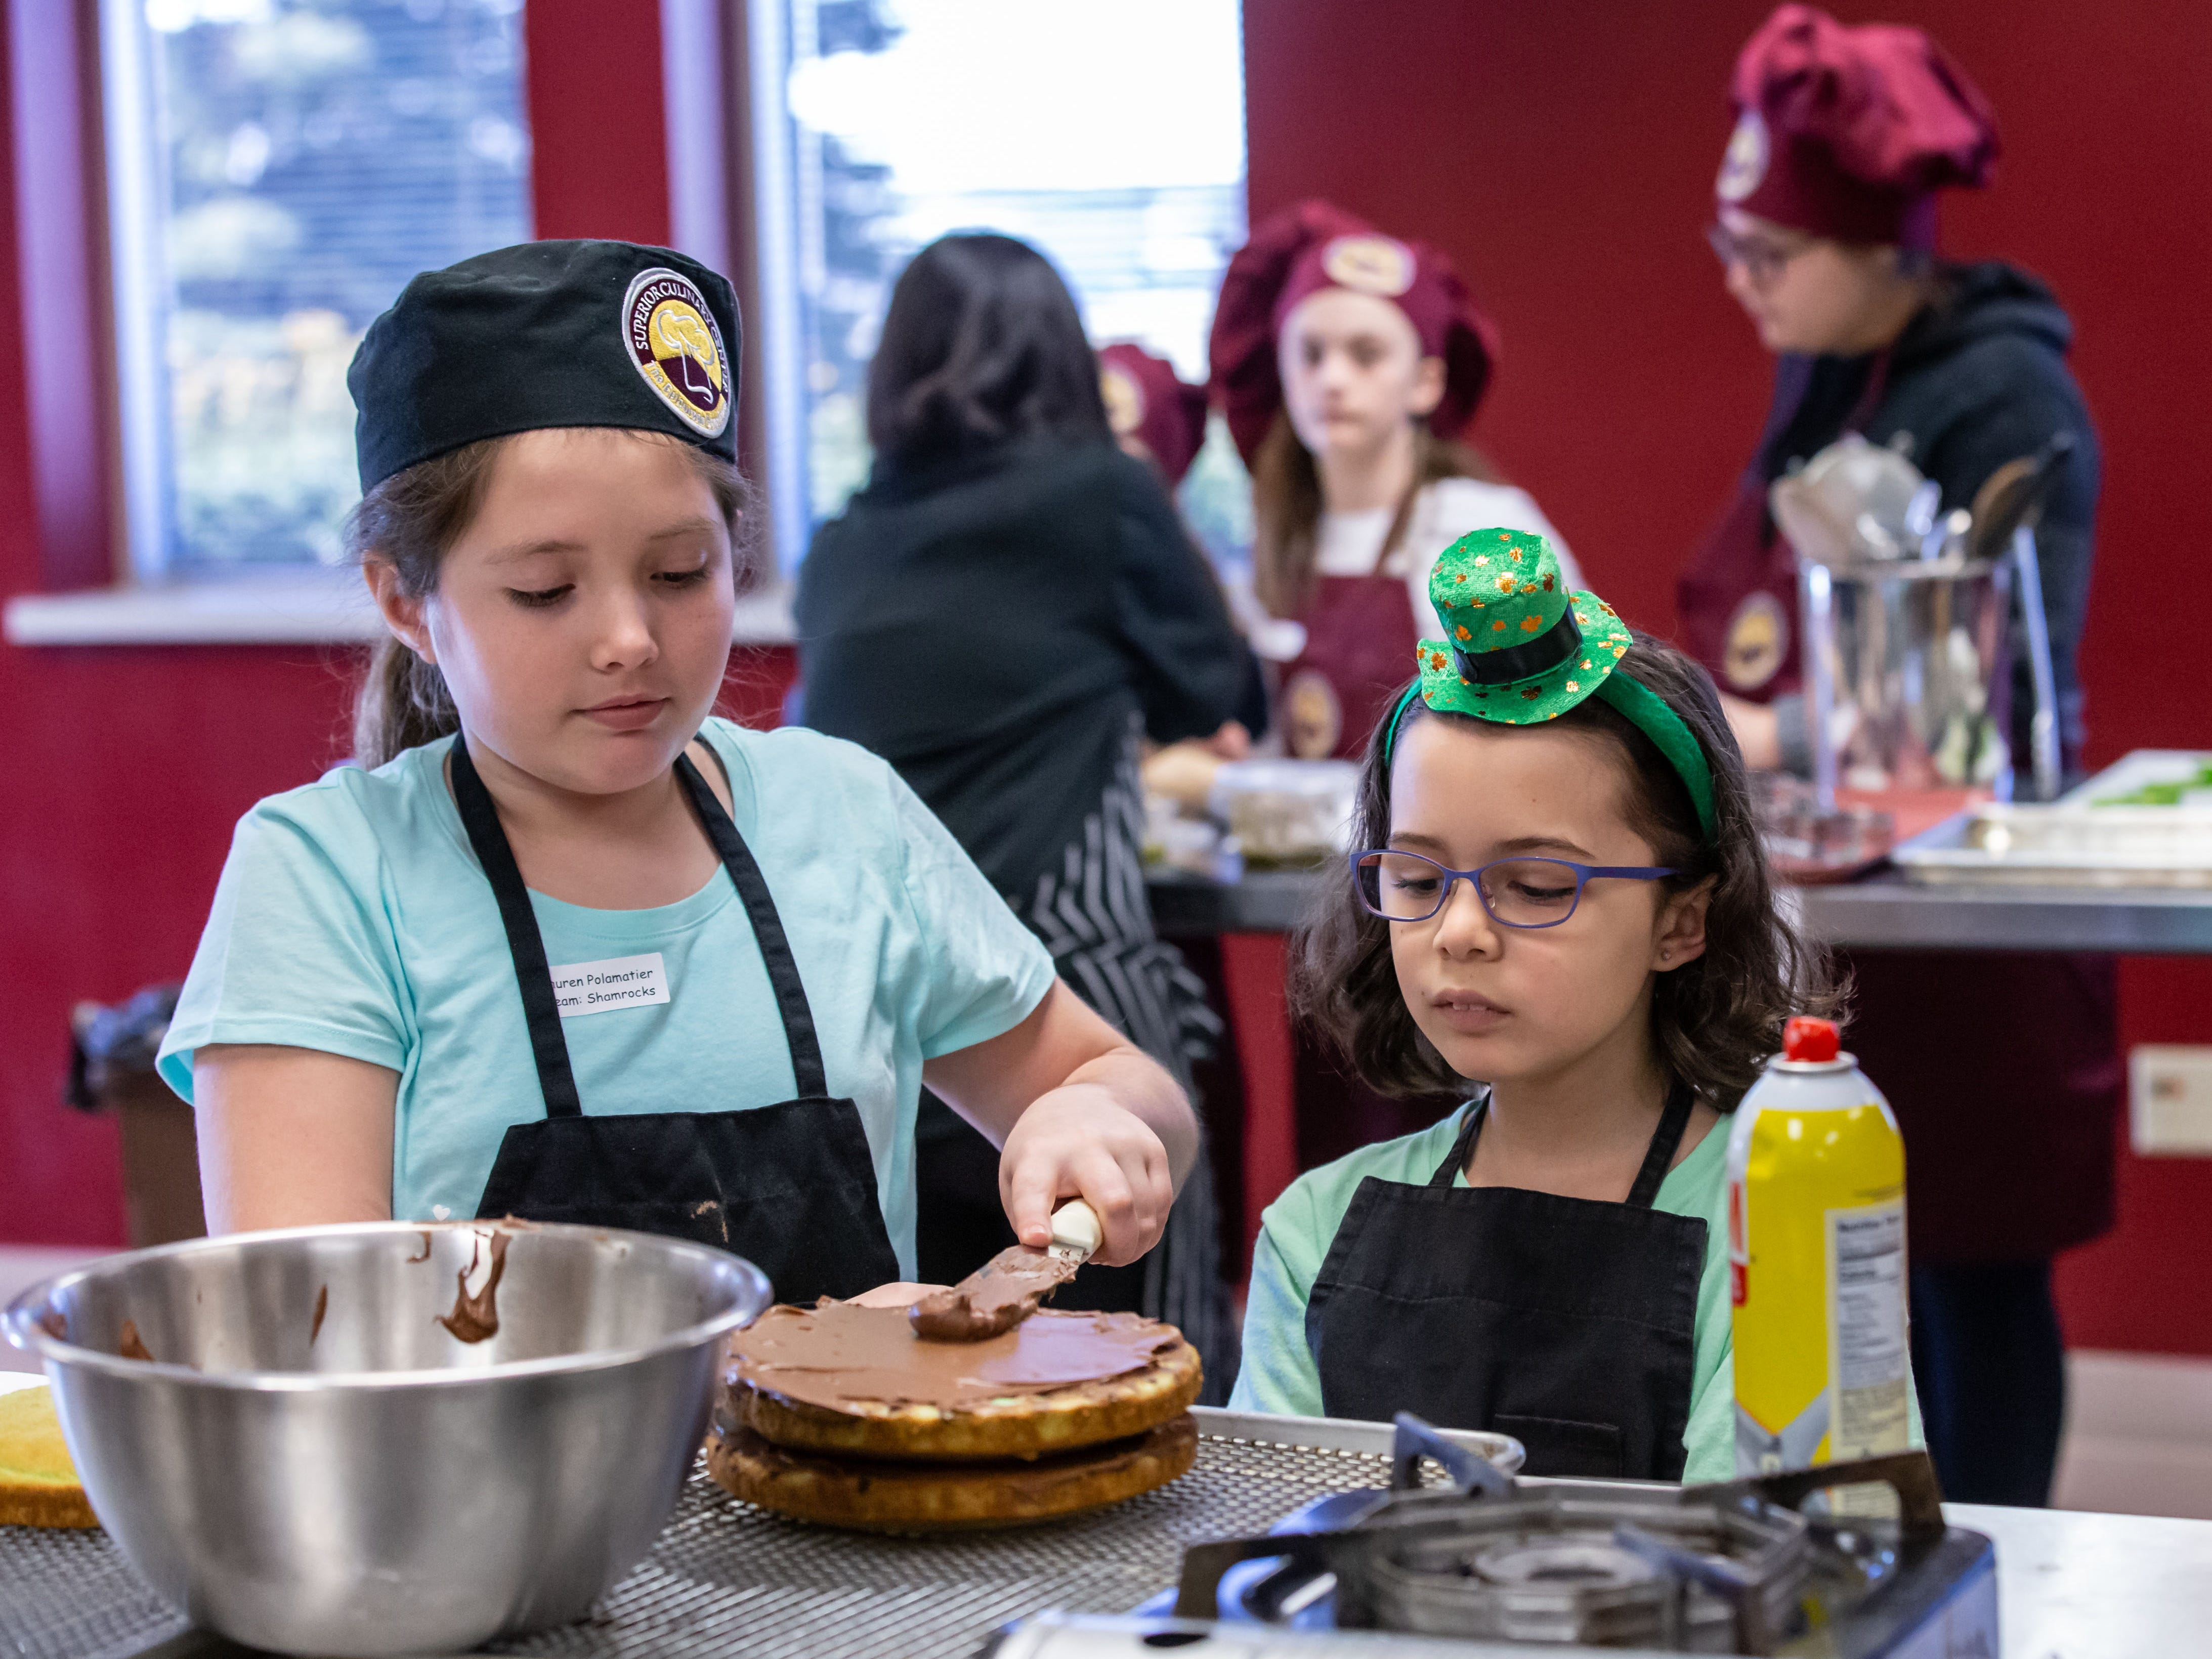 Chefs in training Lauren Polamatier (left), 10, and Mercedes Jaquez, 8, both of New Berlin, spread frosting on a cake they created during the St. Patrick's Kids Cooking Class at Superior Culinary Center in Saint Francis on Saturday, March 16, 2019. During the class youngsters learned how to prepare green pizza, Irish brown soda bread, guacamole and chips, mint chocolate chip cake and a vanilla mint milkshake.